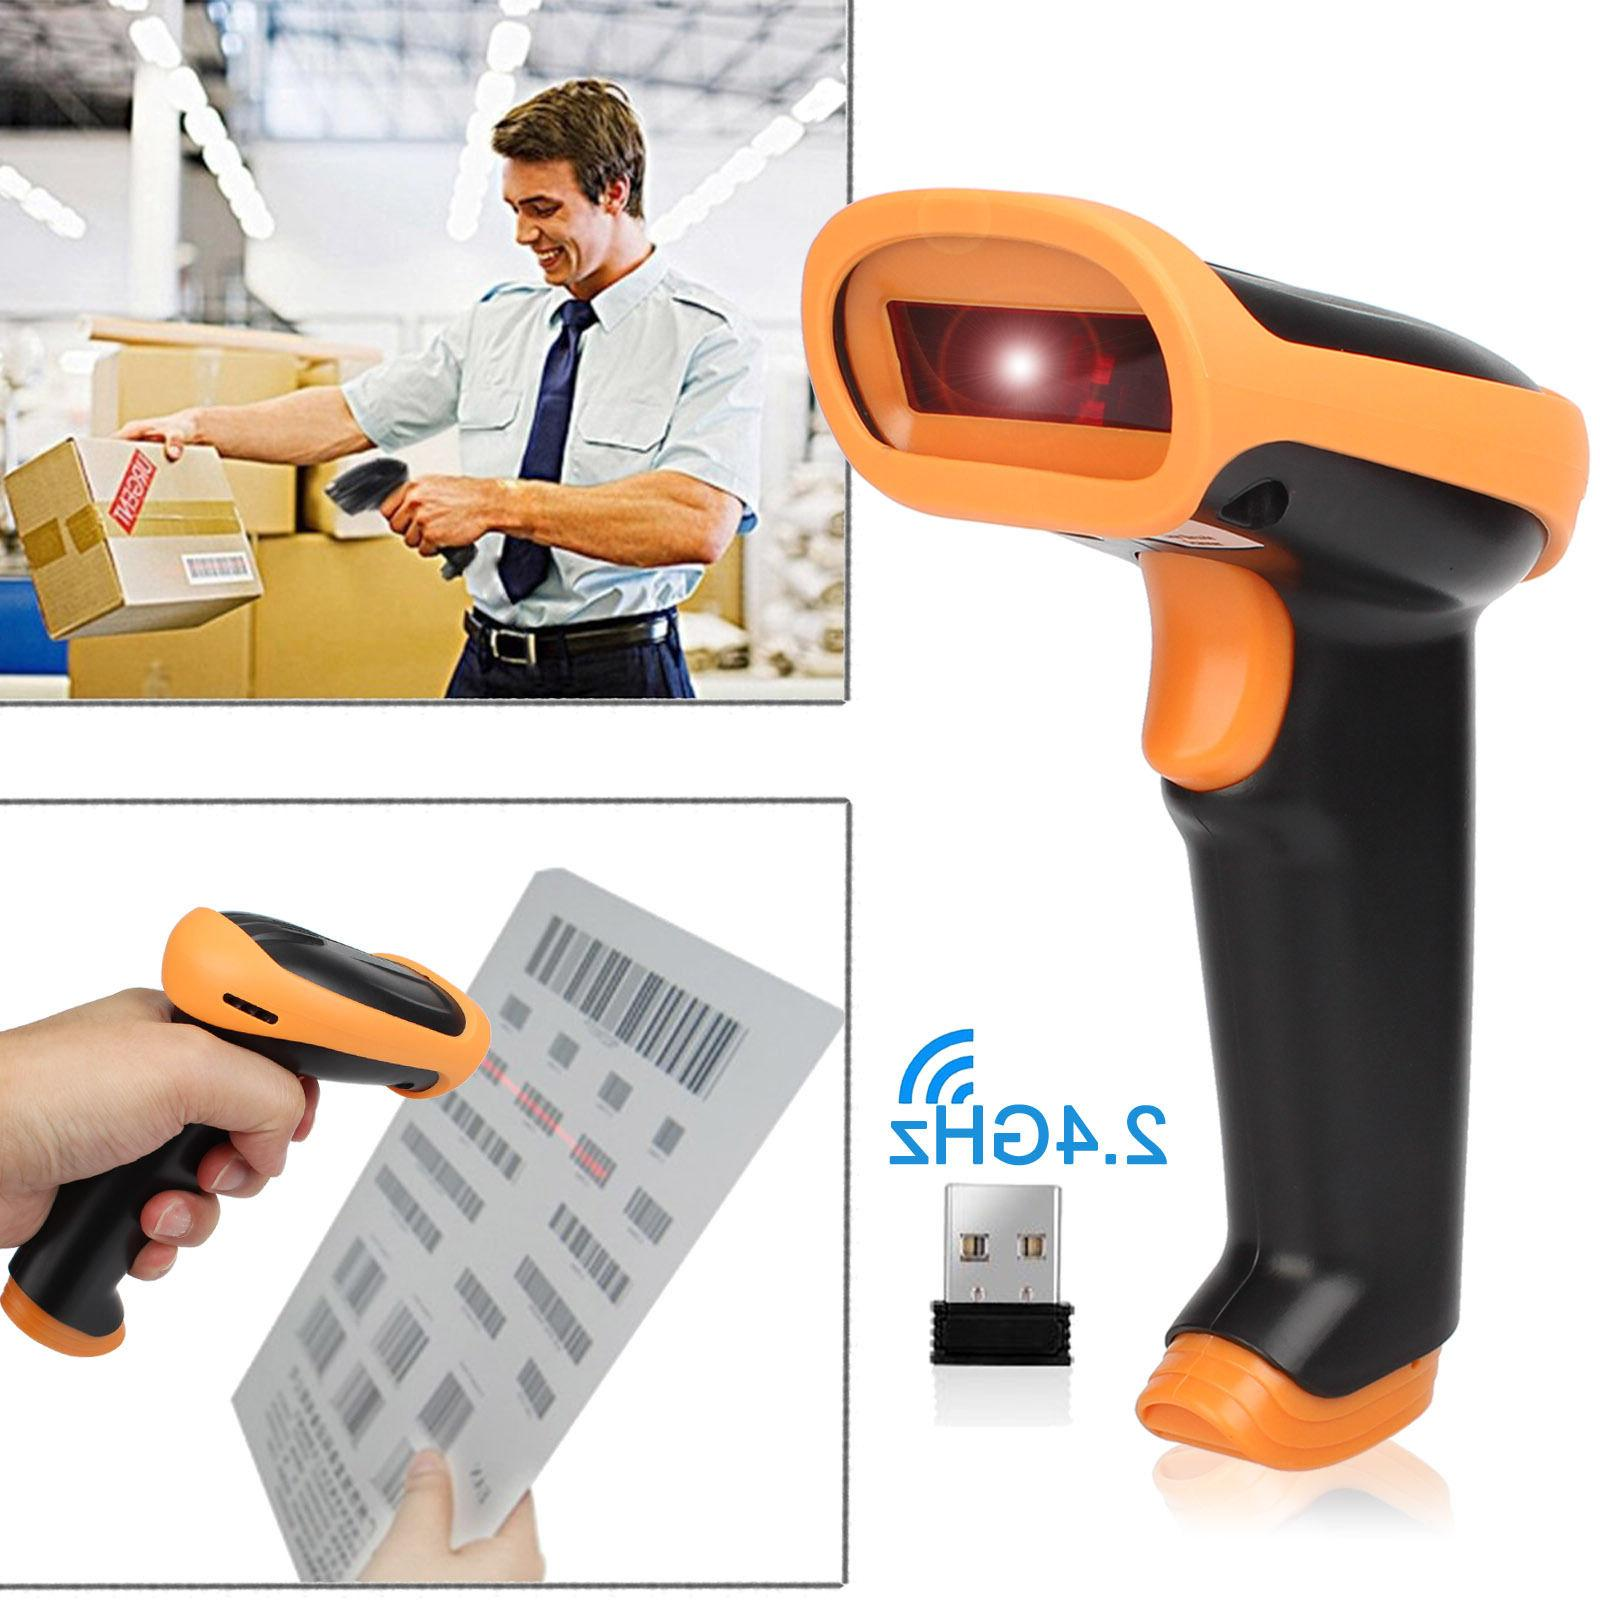 2.4G USB Wireless Cordless Portable 1D/2D/QR Barcode Scanner